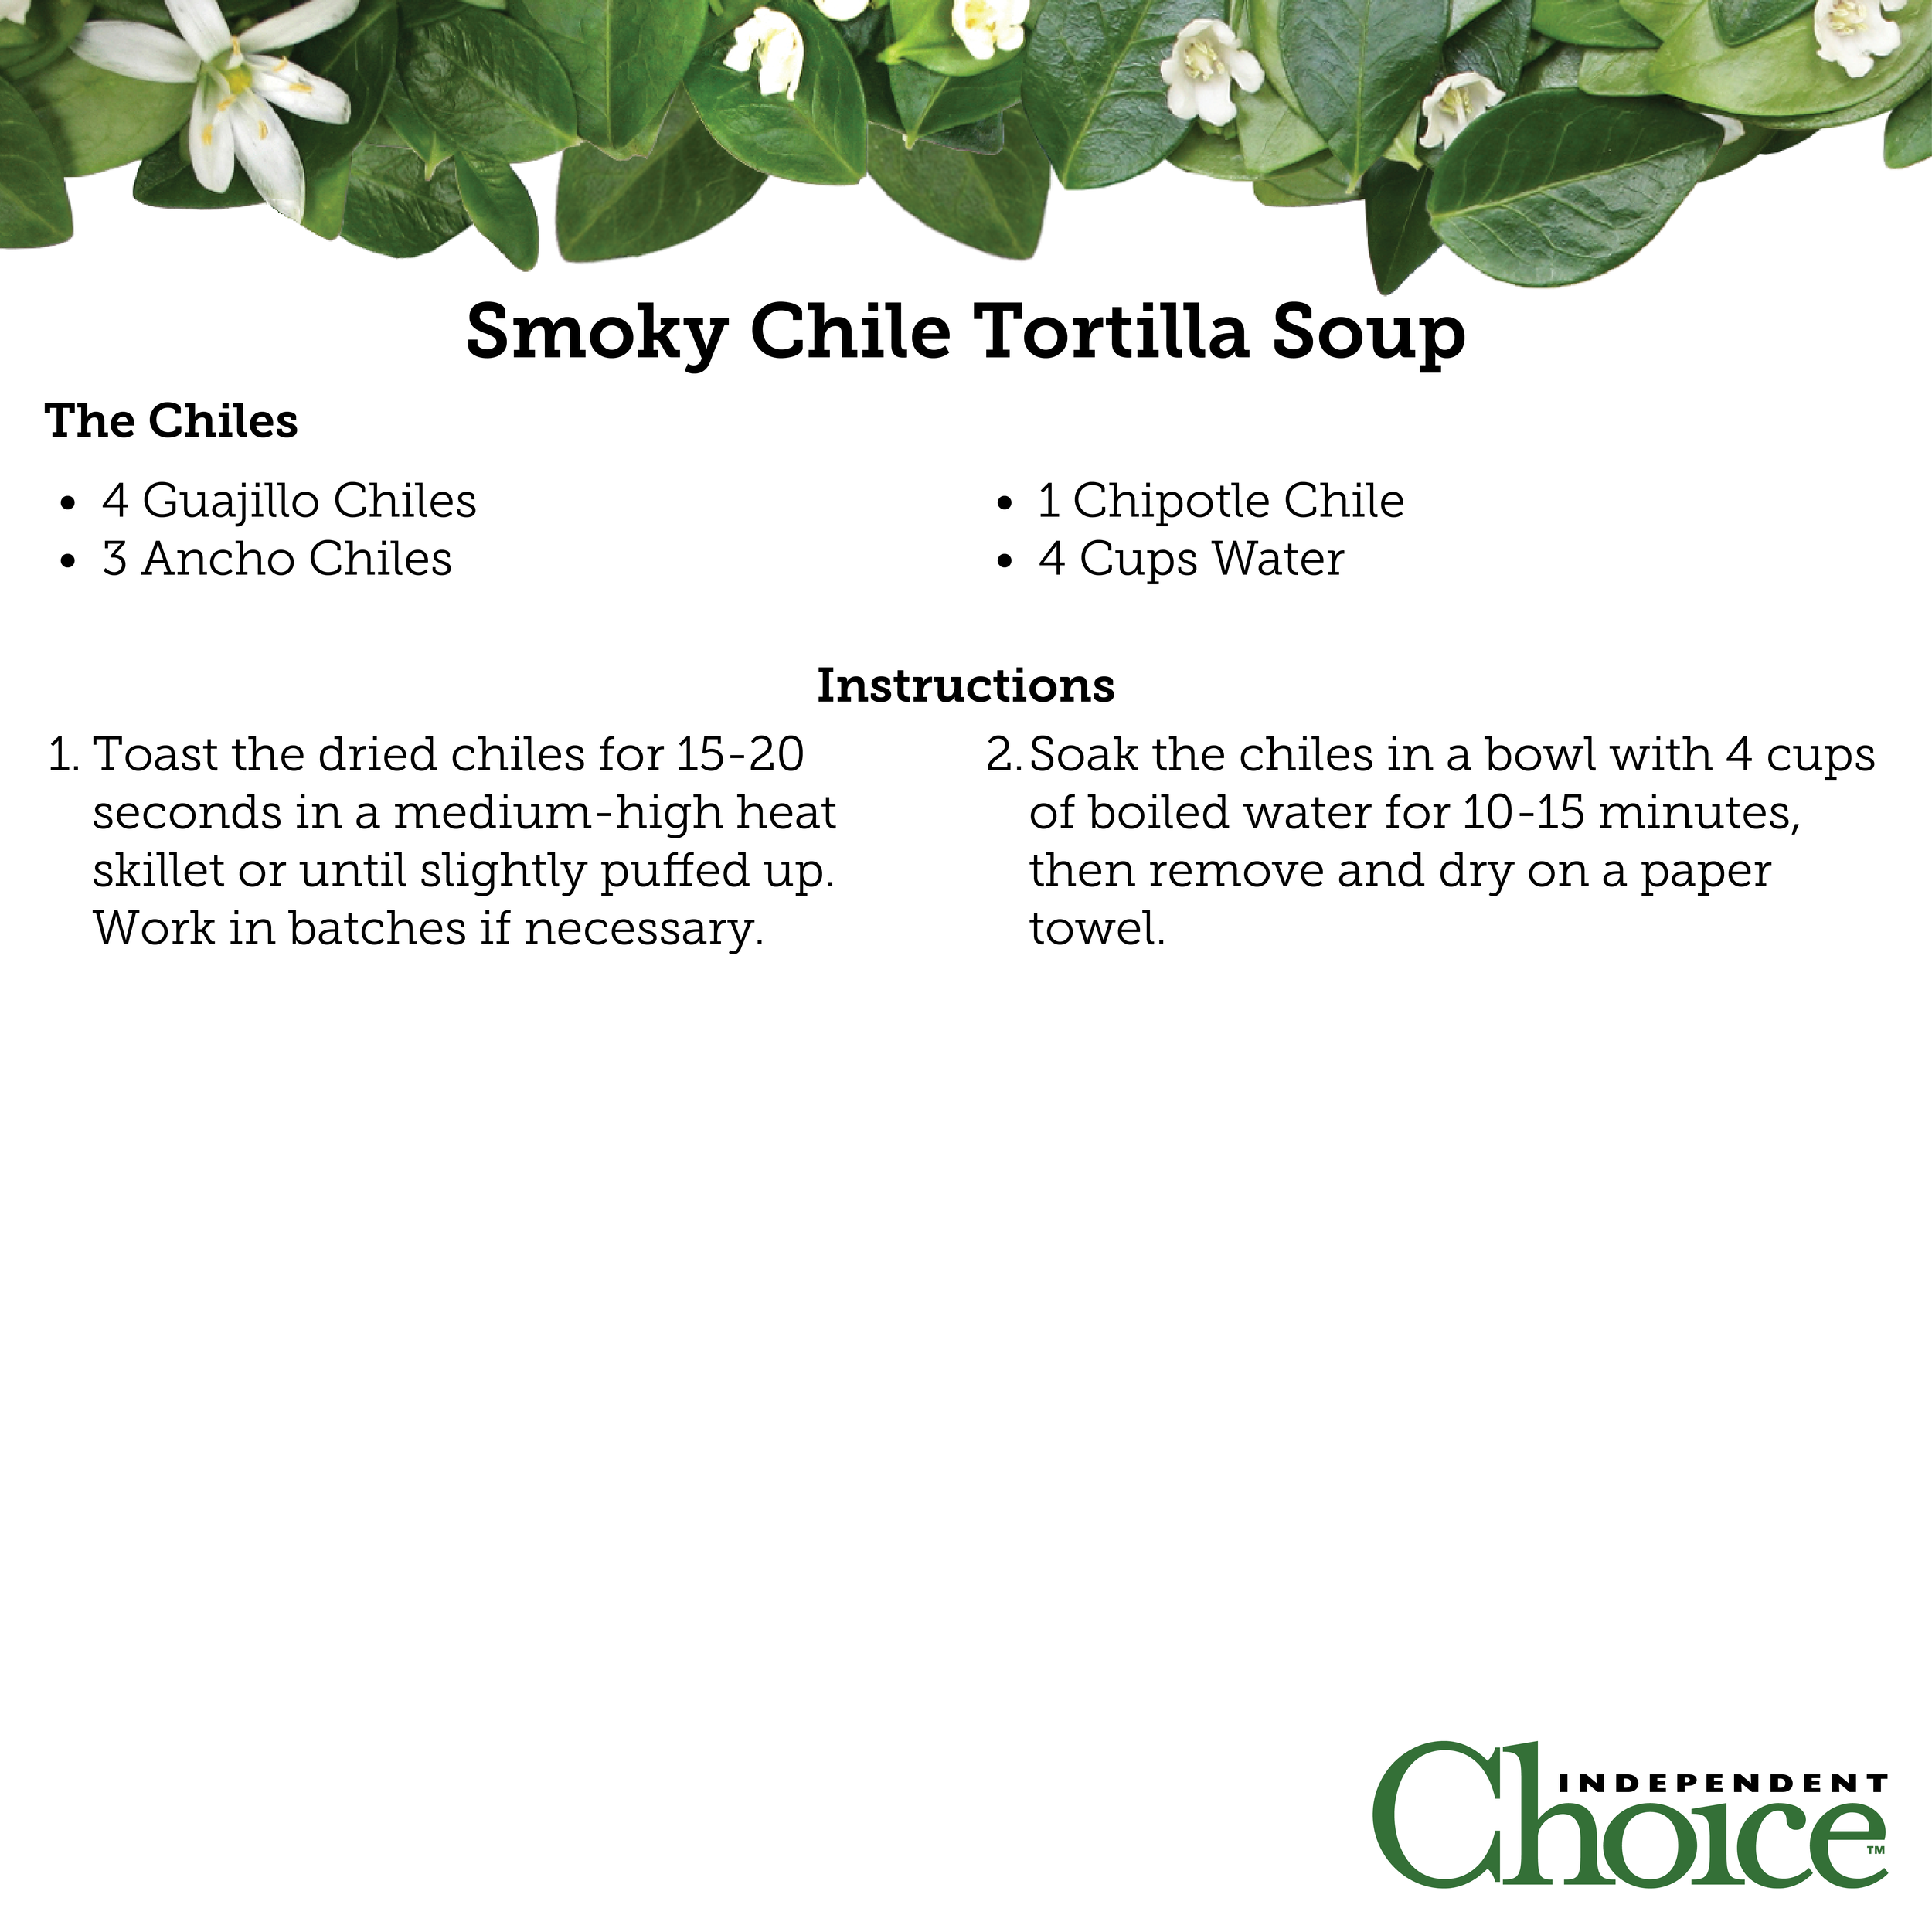 Smoky Chile Tortilla Soup 1.png